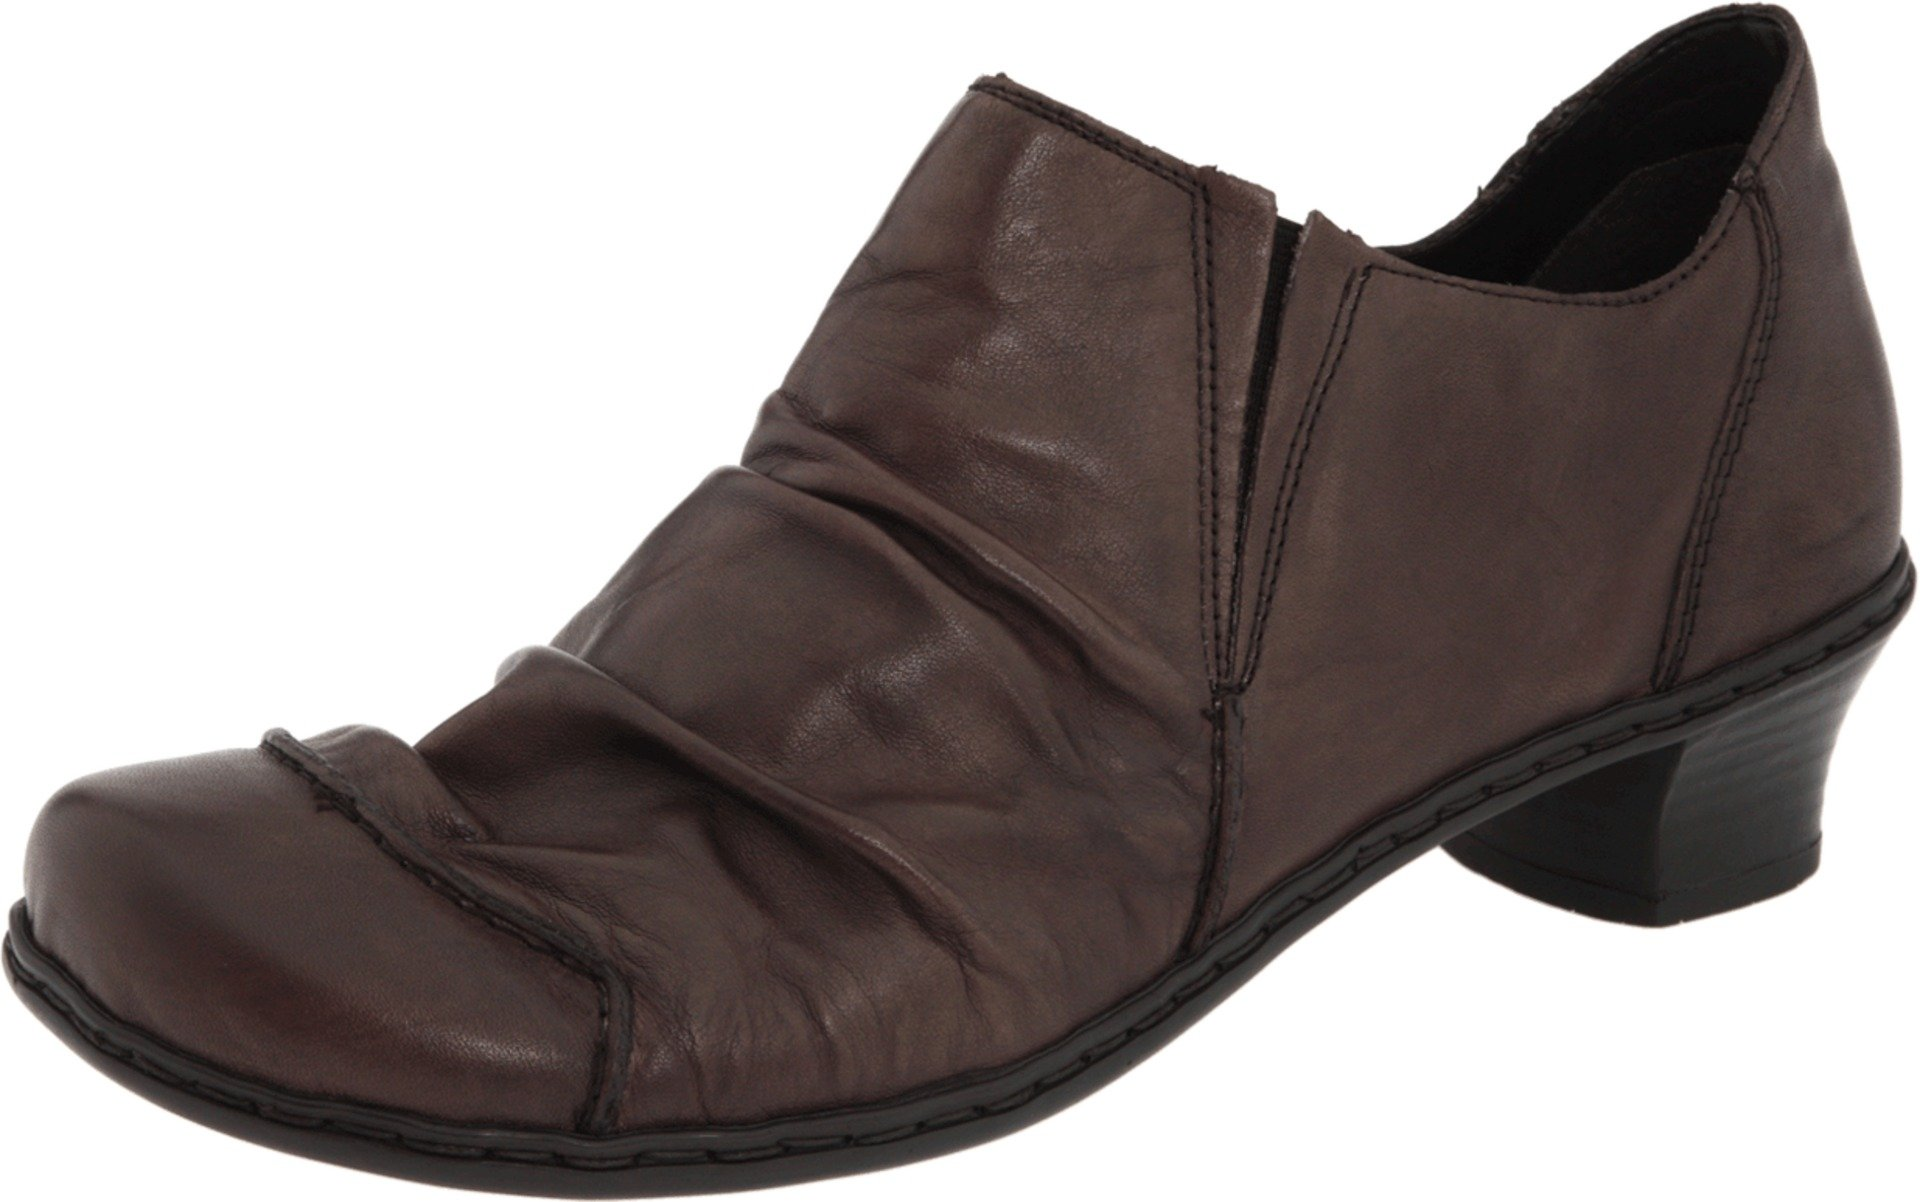 Rieker 52180 Louise 80,Smoke,37 EU (Women's 6.5 M US) by Rieker